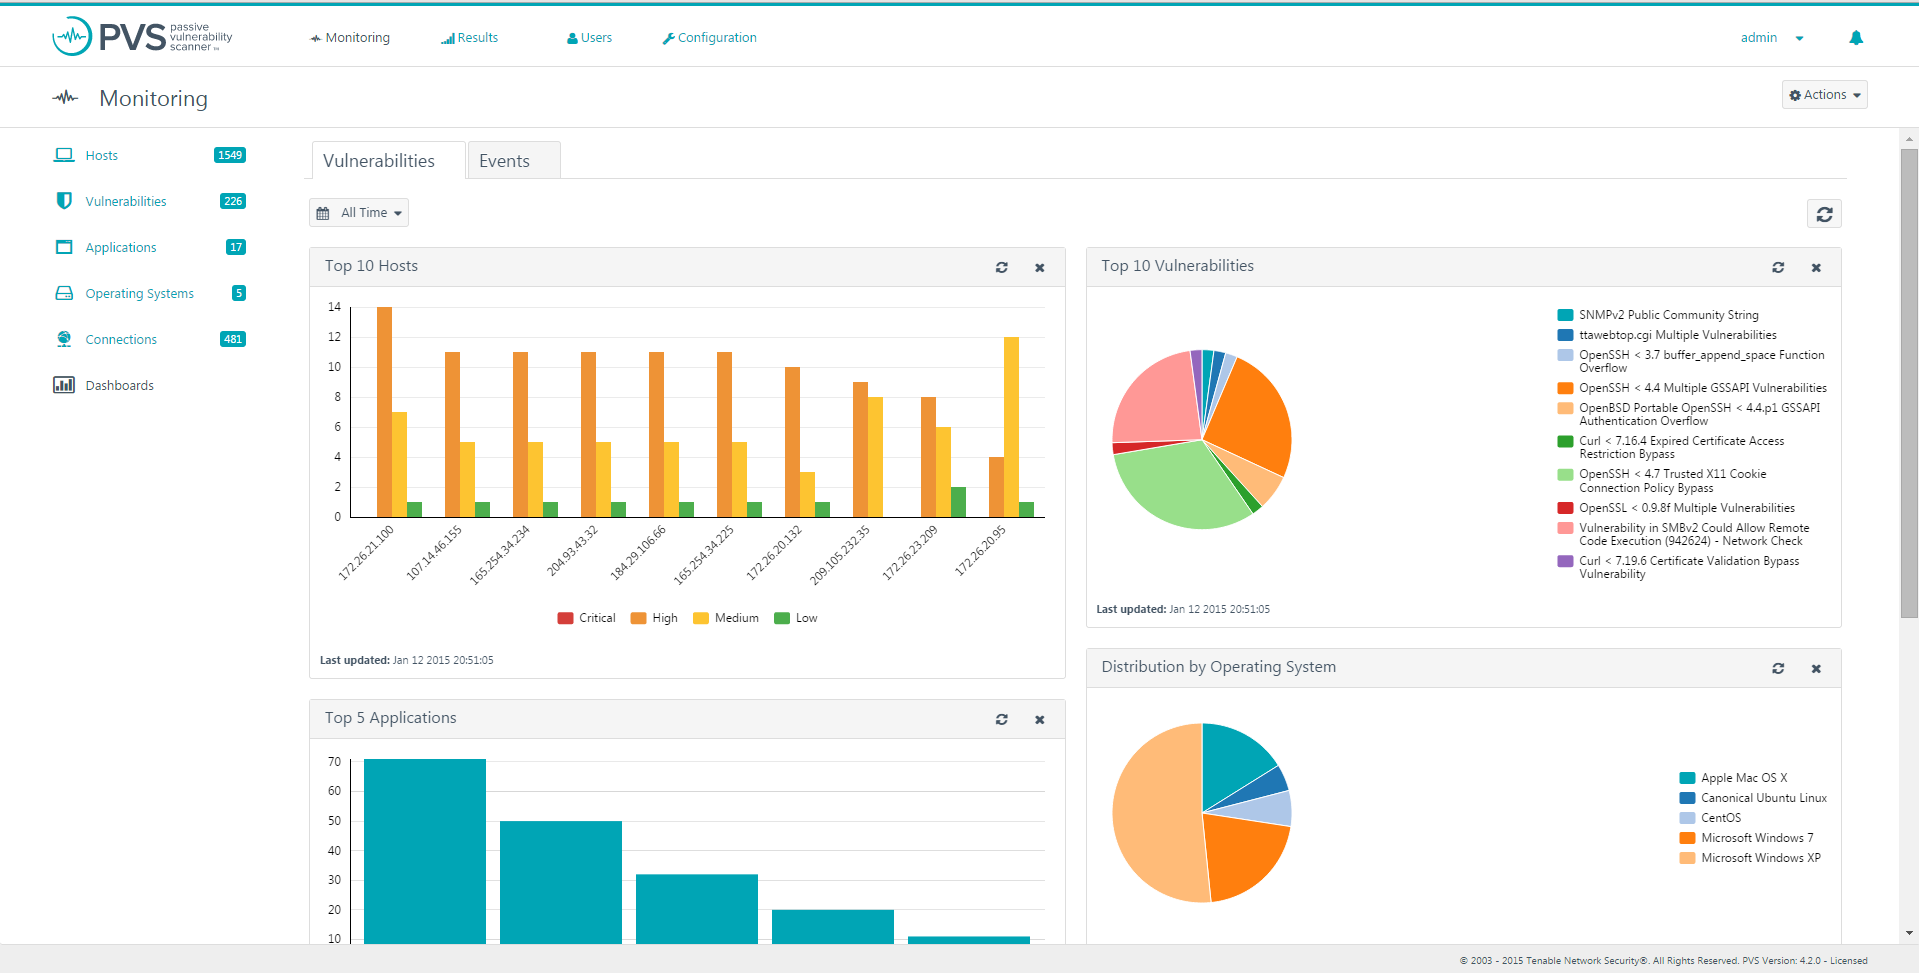 pvs finds vulnerabilities dashboard